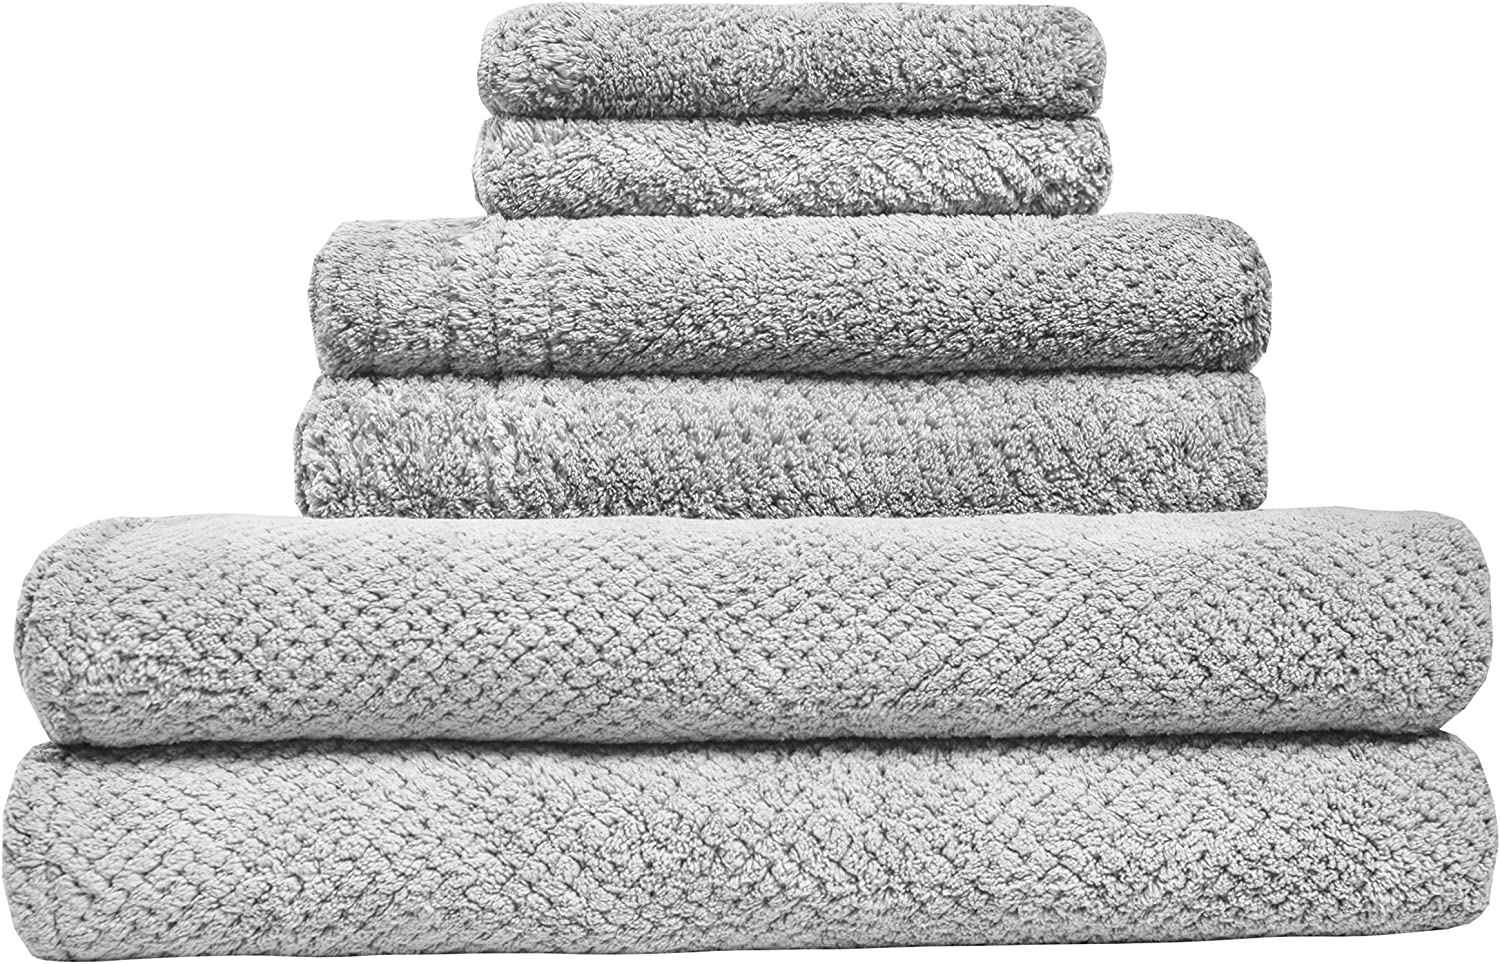 LUCKISS Super Soft Premium Family Microfiber Bath Towel Set Quick Dry Ultra Absorbent 2 Large Bath Towels for Bathroom and Beach, 2 Hand Towels, 2 Face Towels(6 Pack)